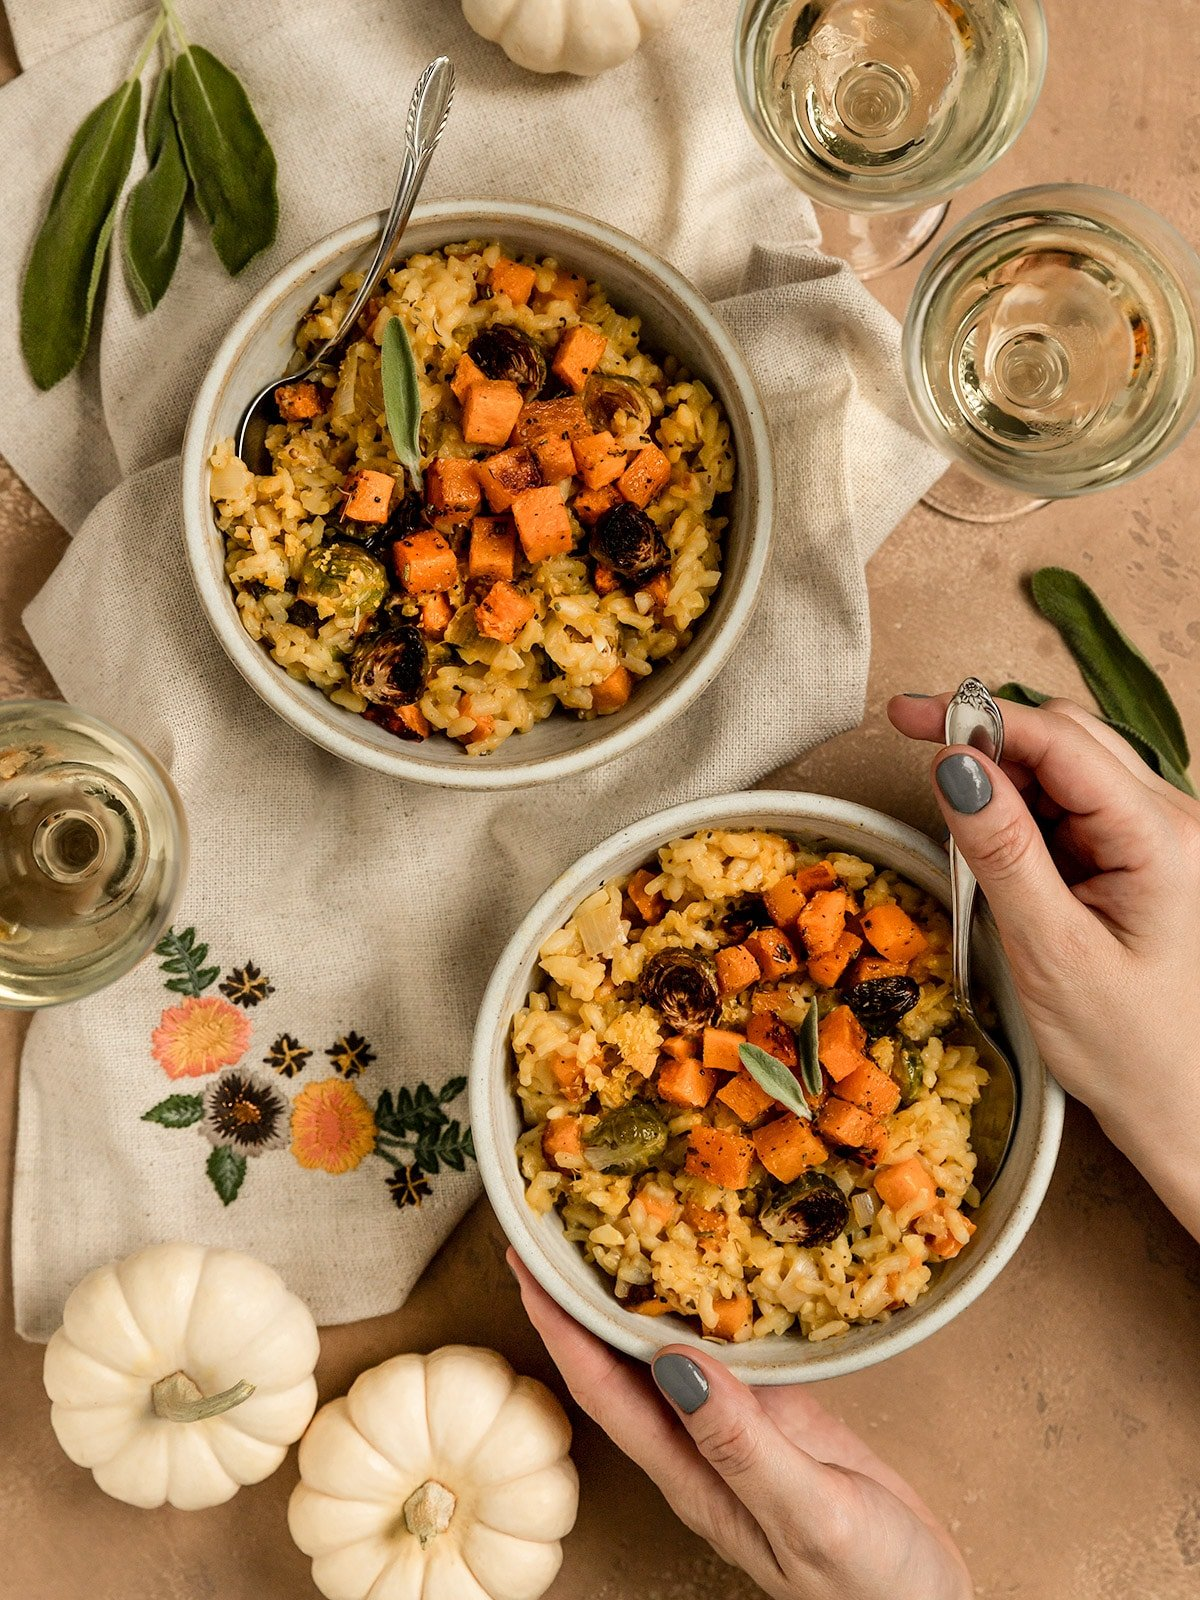 two bowls of risotto with butternut squash, brussels sprouts, and sage on top with a hand holding a spoon in one bowl